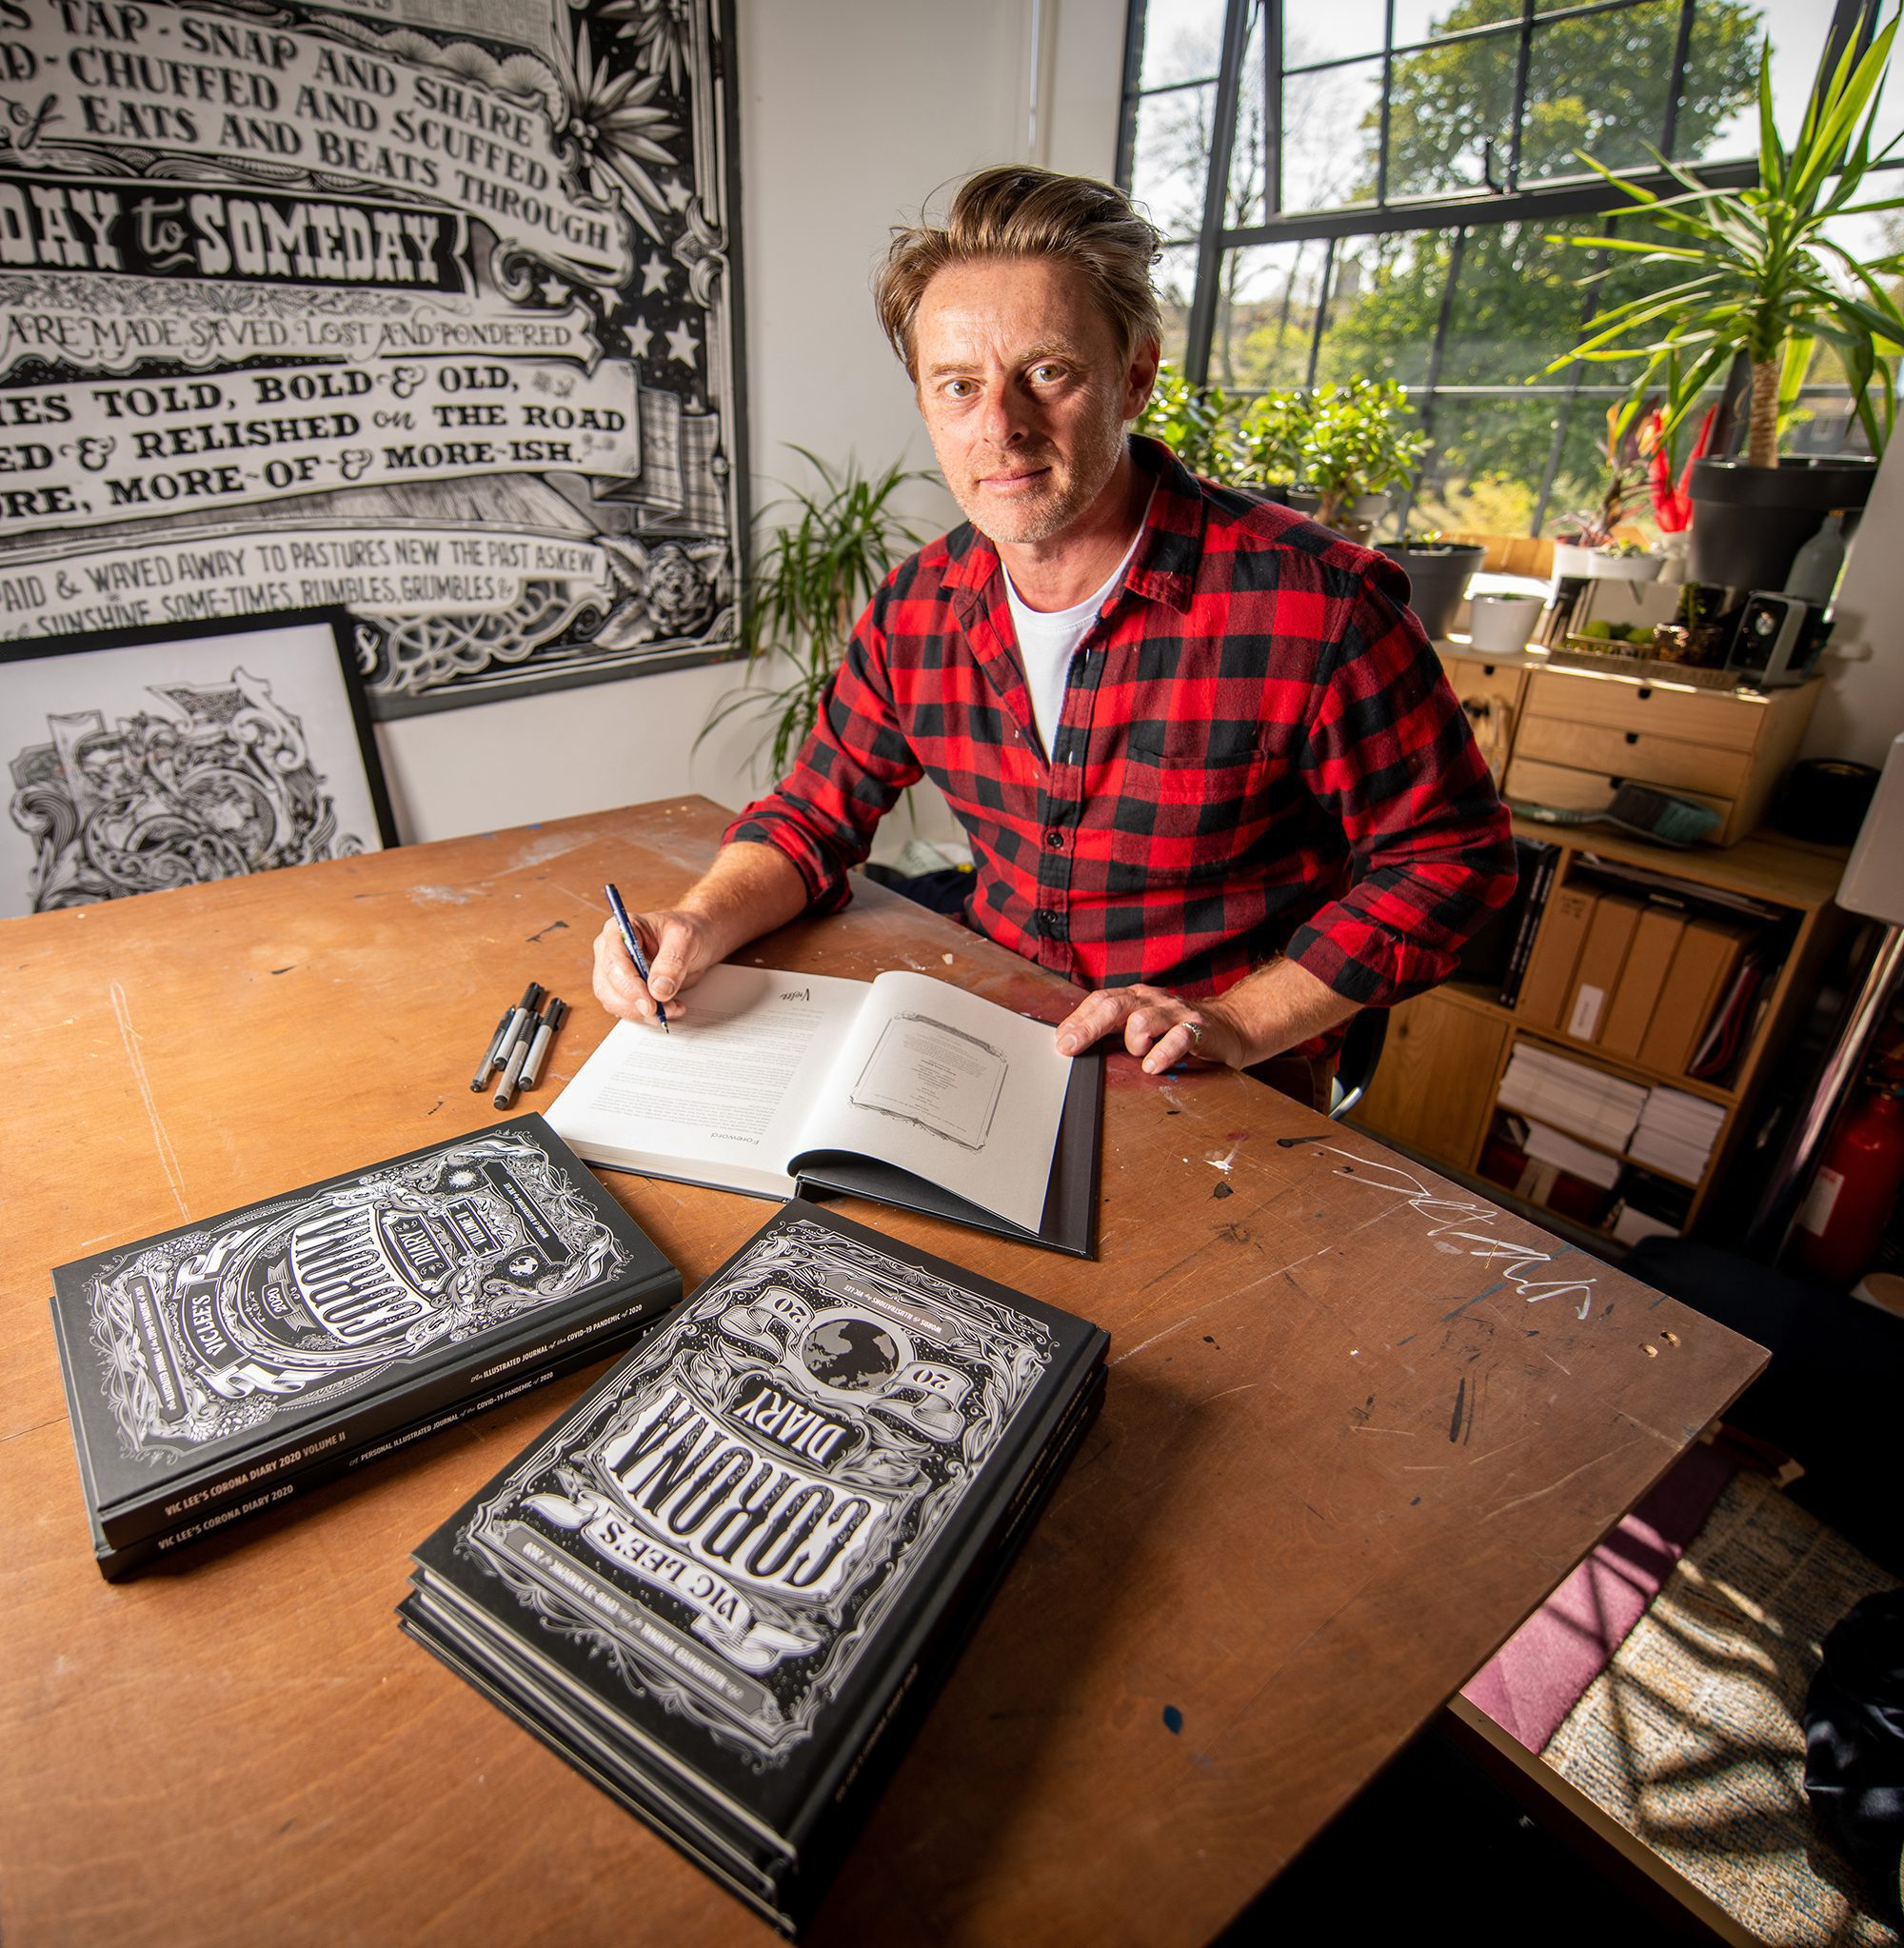 London artist's compelling Corona diary compared to the work of Samuel Pepys goes global